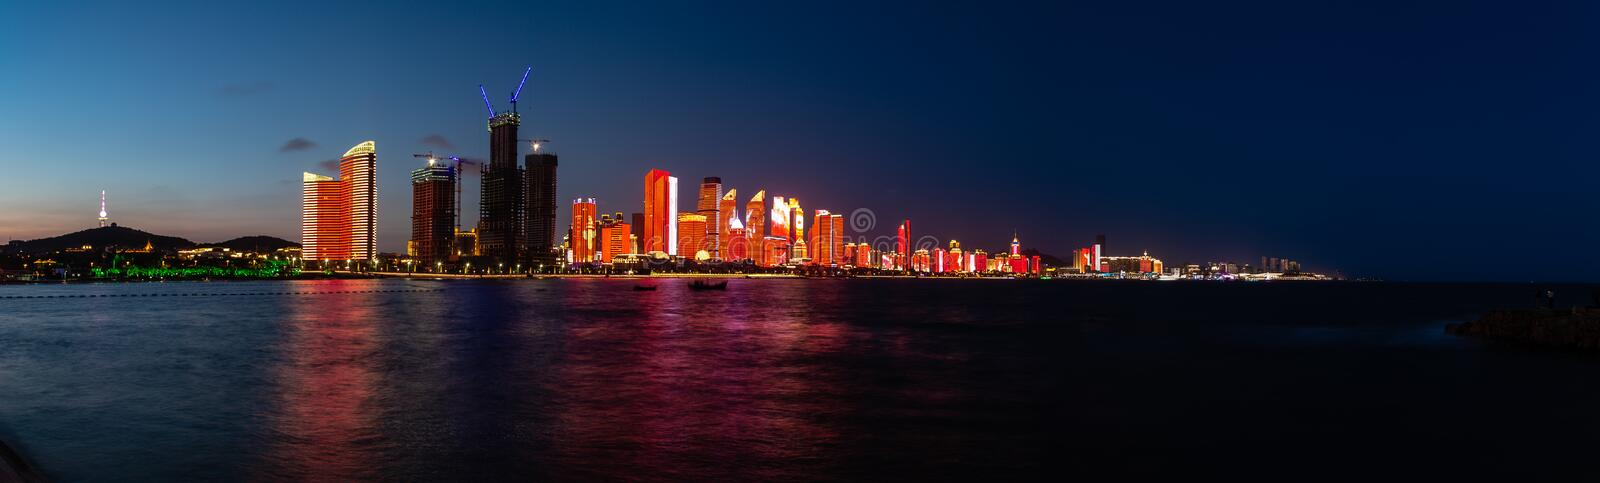 July 2018 - Qingdao, China - The new lightshow of Qingdao skyline created for the SCO summit. Between China and Russia of June 2018 seen from the Bathing Beach royalty free stock image